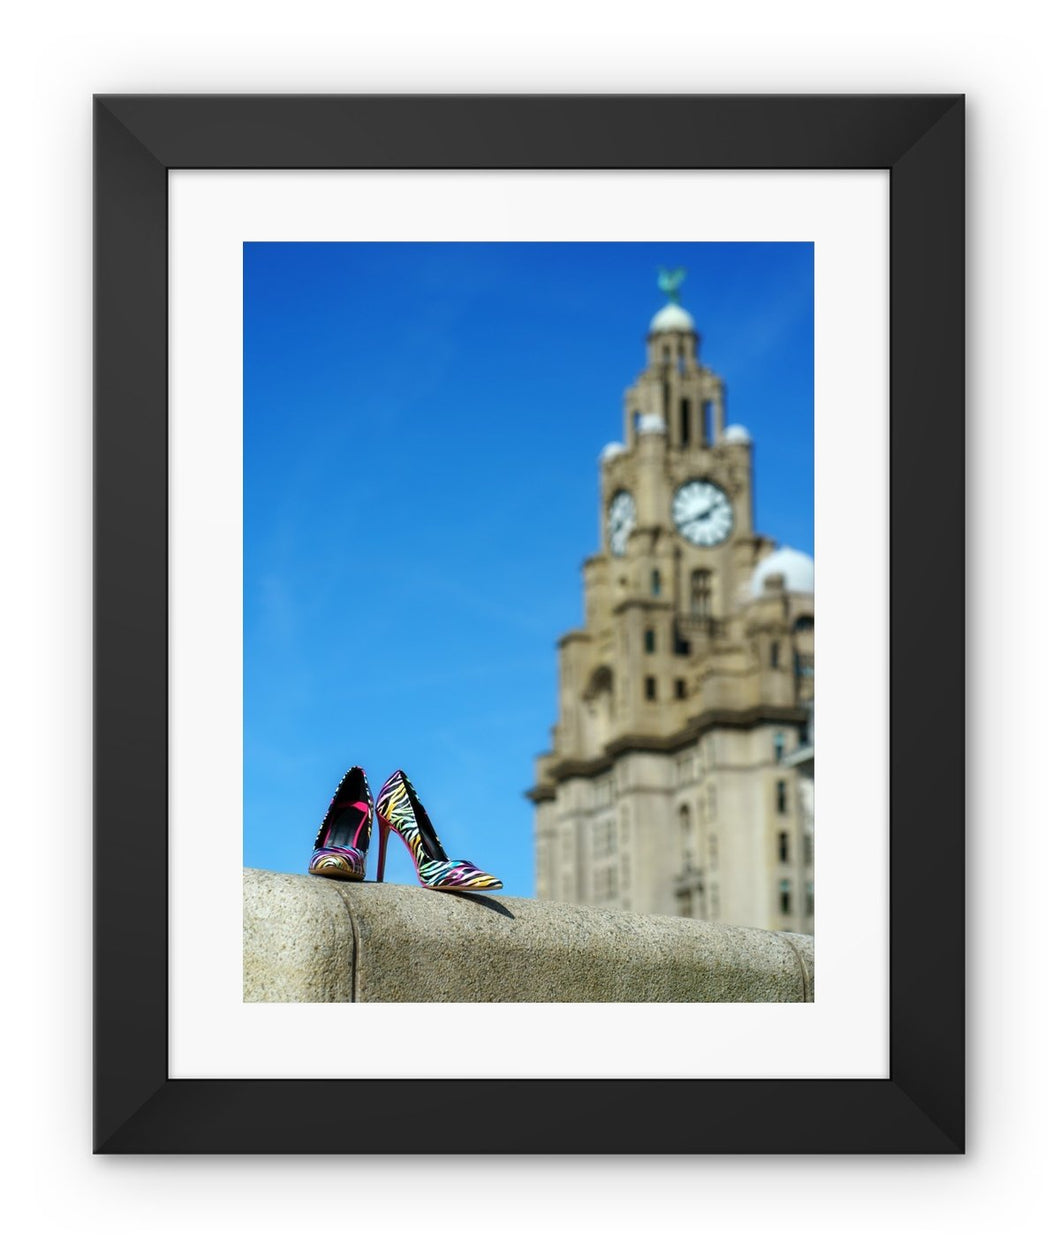 Framed print with black border showing Liverpool liver building with pair of multi-coloured high heeled shoes in foreground